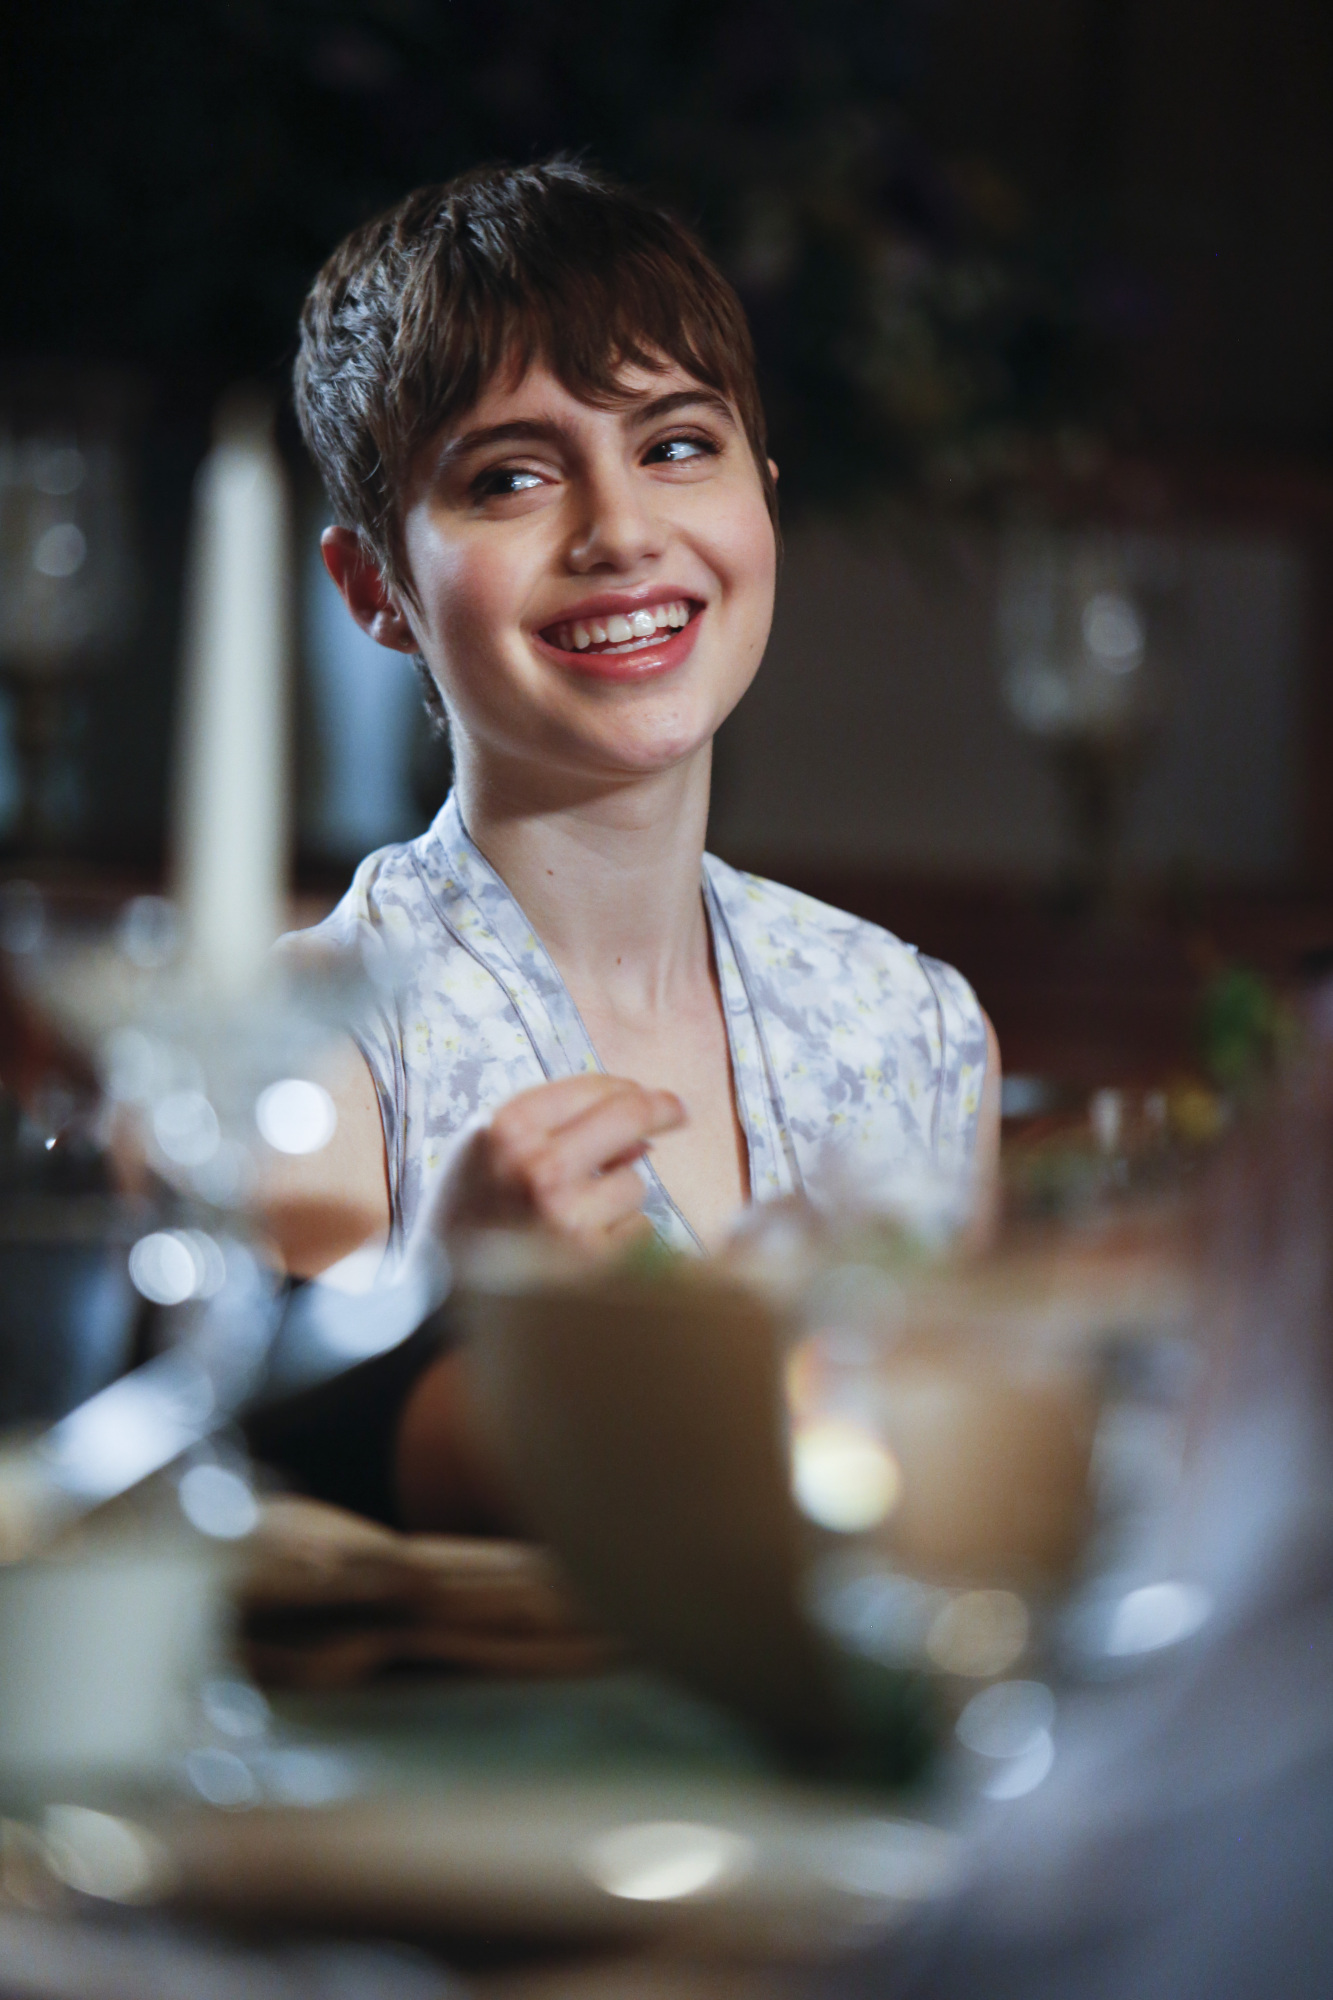 6. In 2014, Sami Gayle starred in